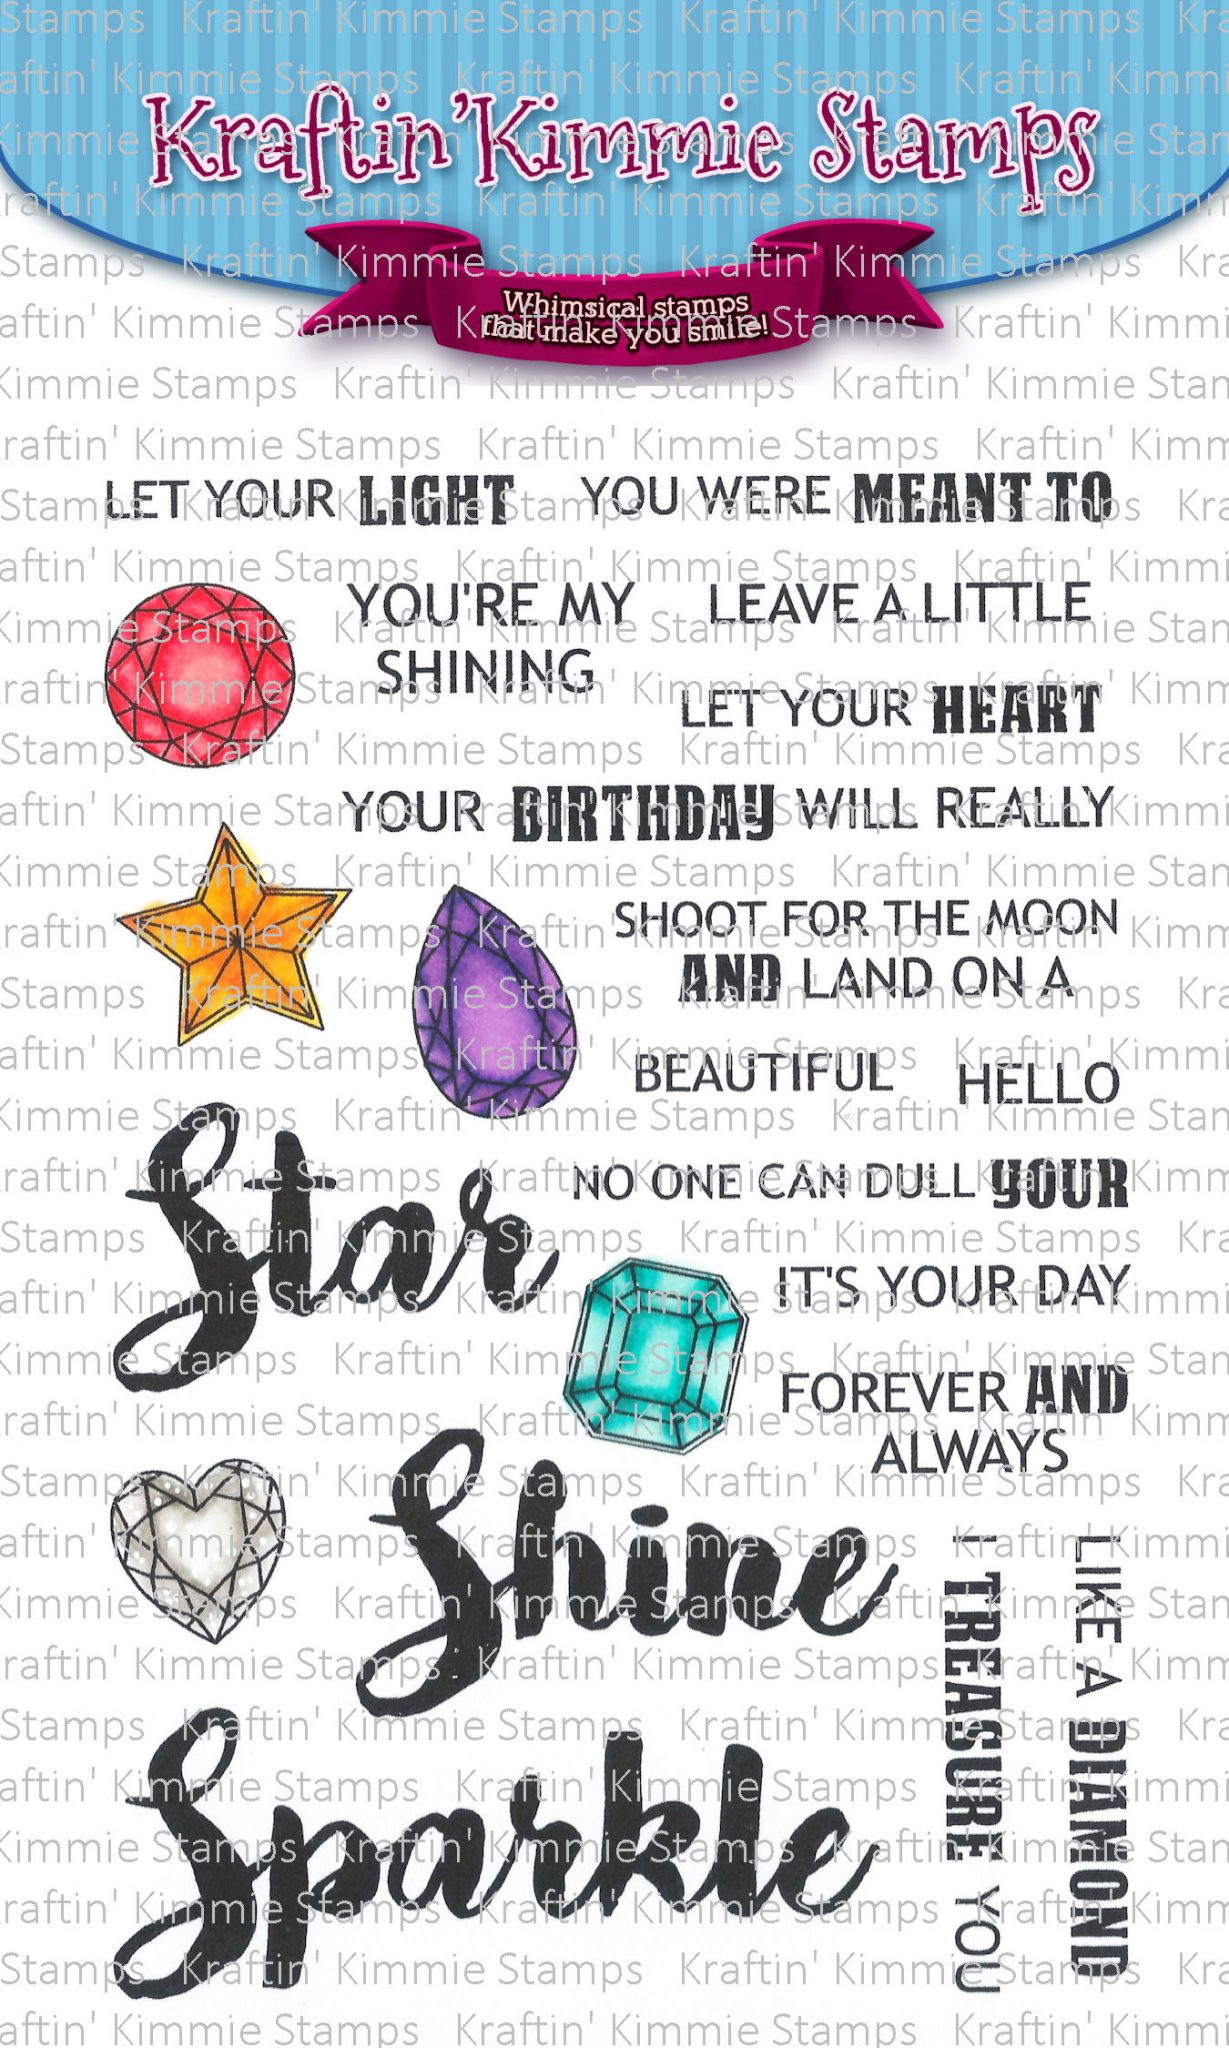 Let Your Light Shine by Kraftin Kimmie Stamps